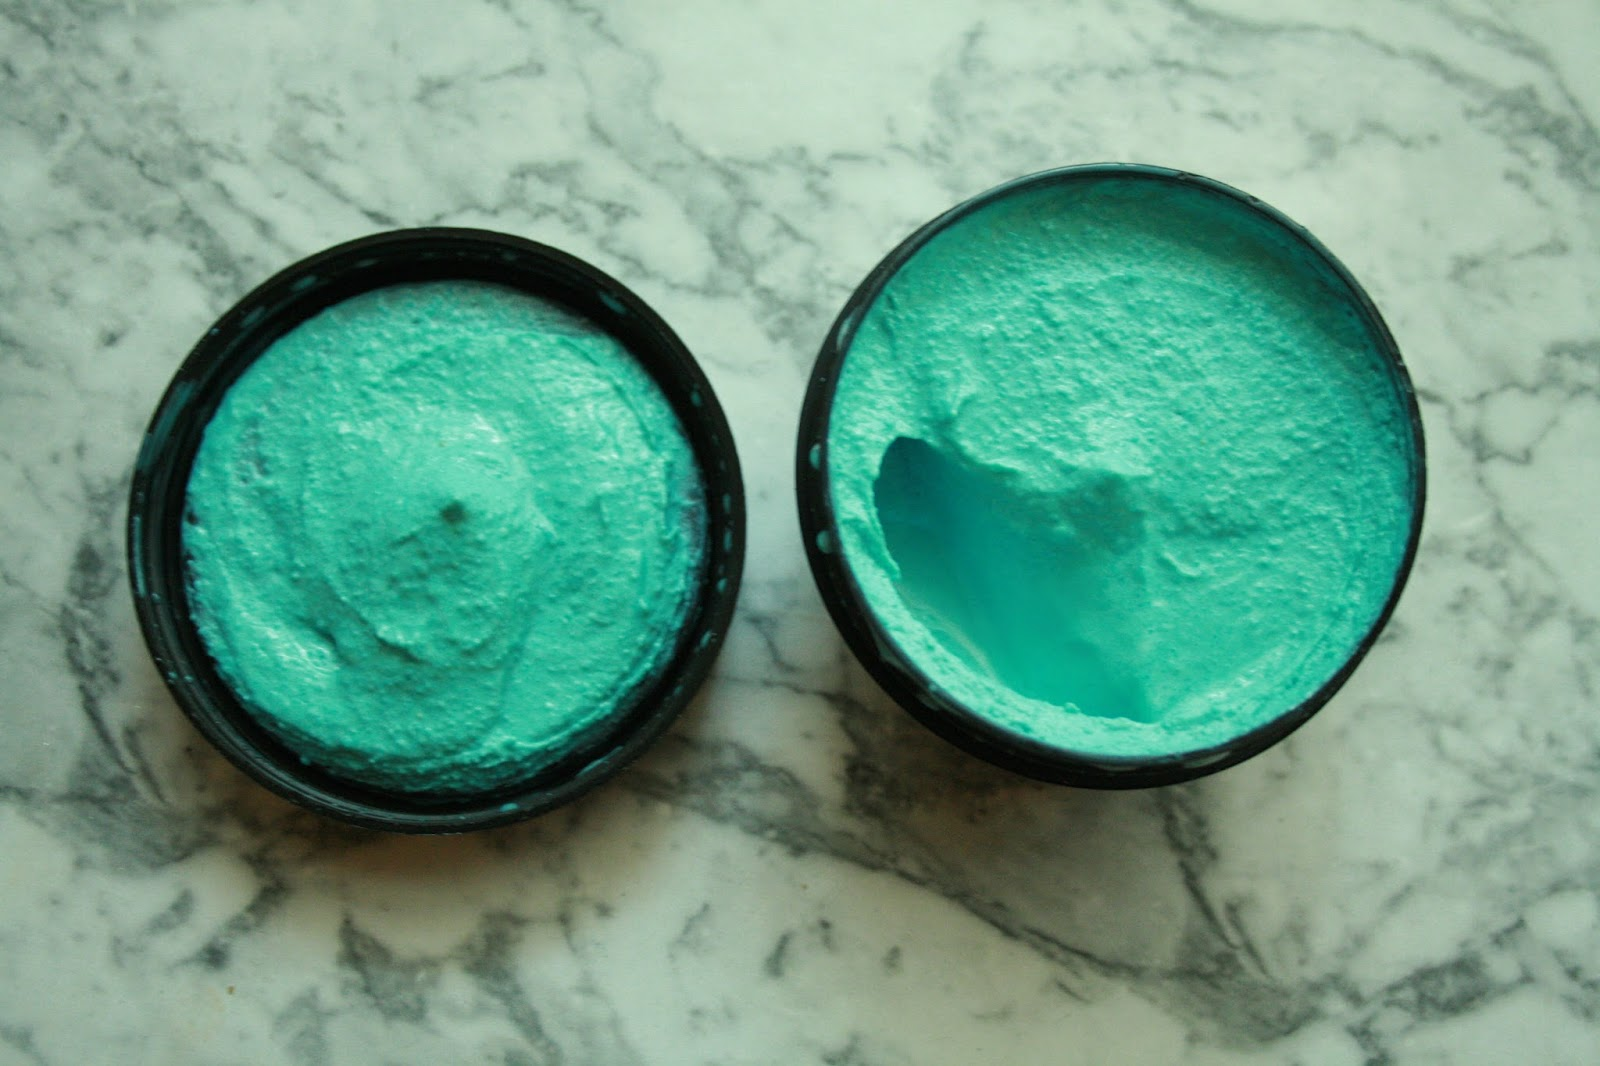 Dont look at me lush face mask review - The Only Annoying Thing With The Lush Fresh Face Masks Is That They Have A Shelf Life Of About 3 Weeks There S Noooooo Way You Could Use This Whole Mask Up